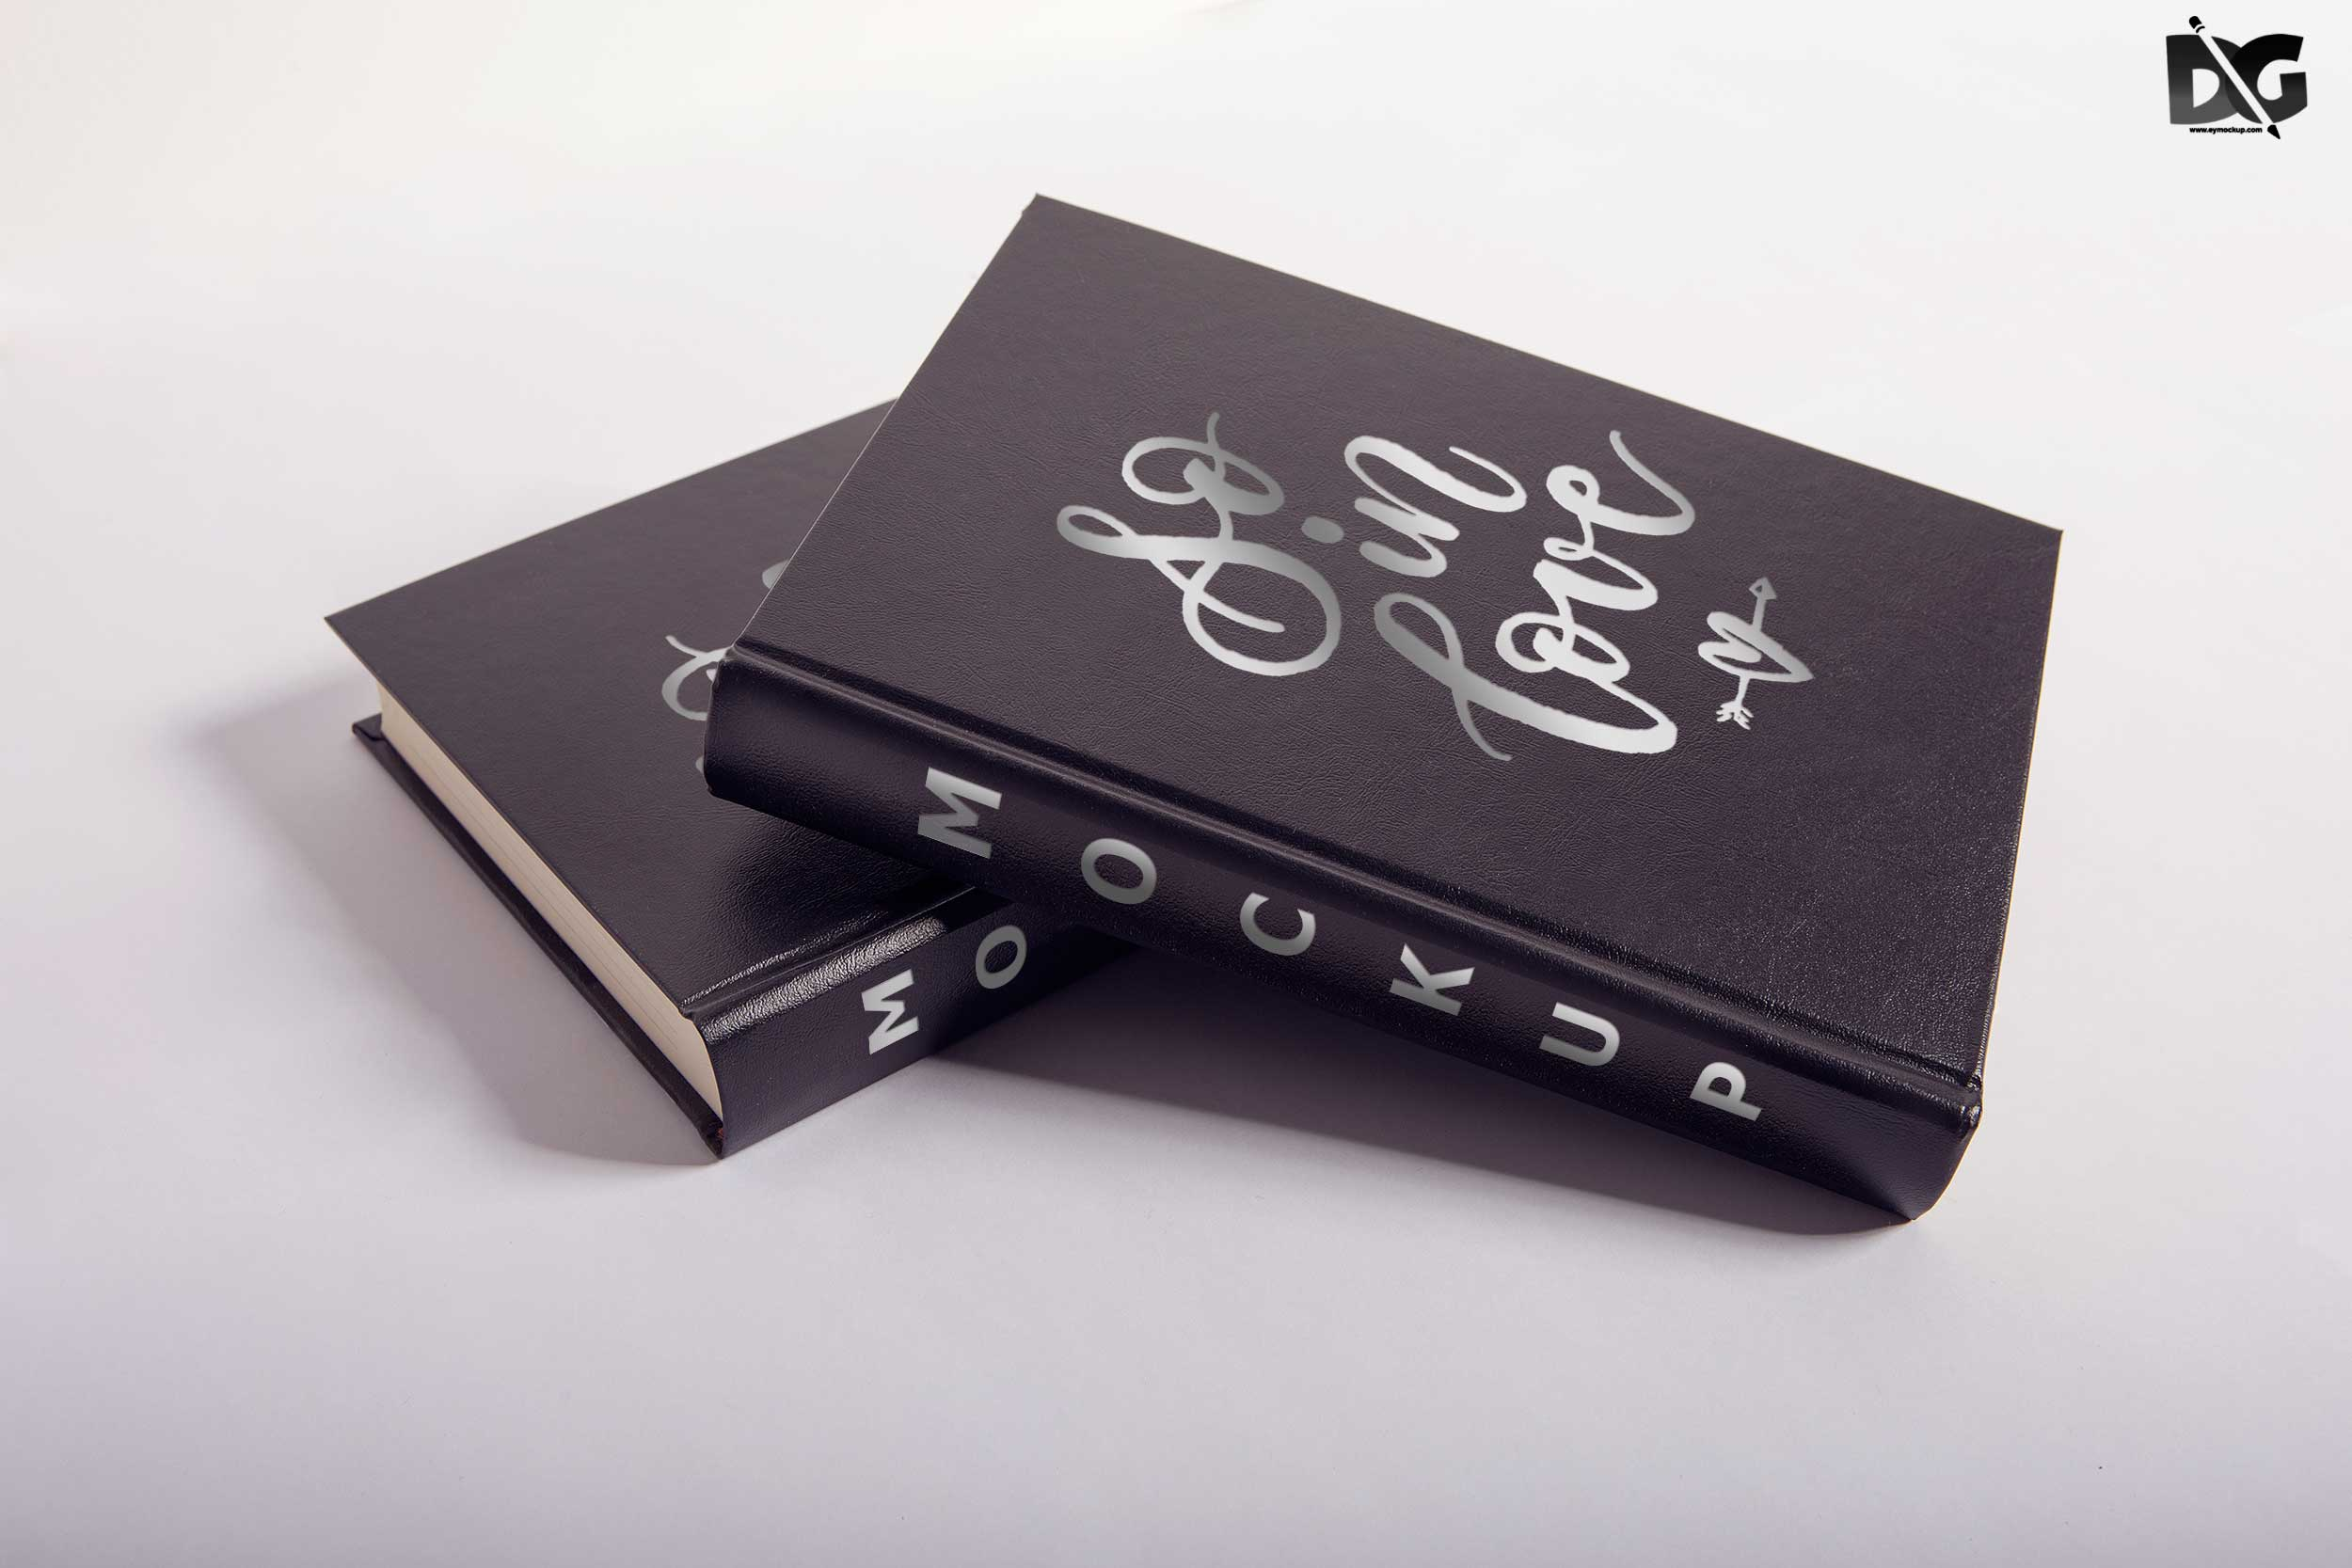 Free Leather Book Cover PSD Mockup